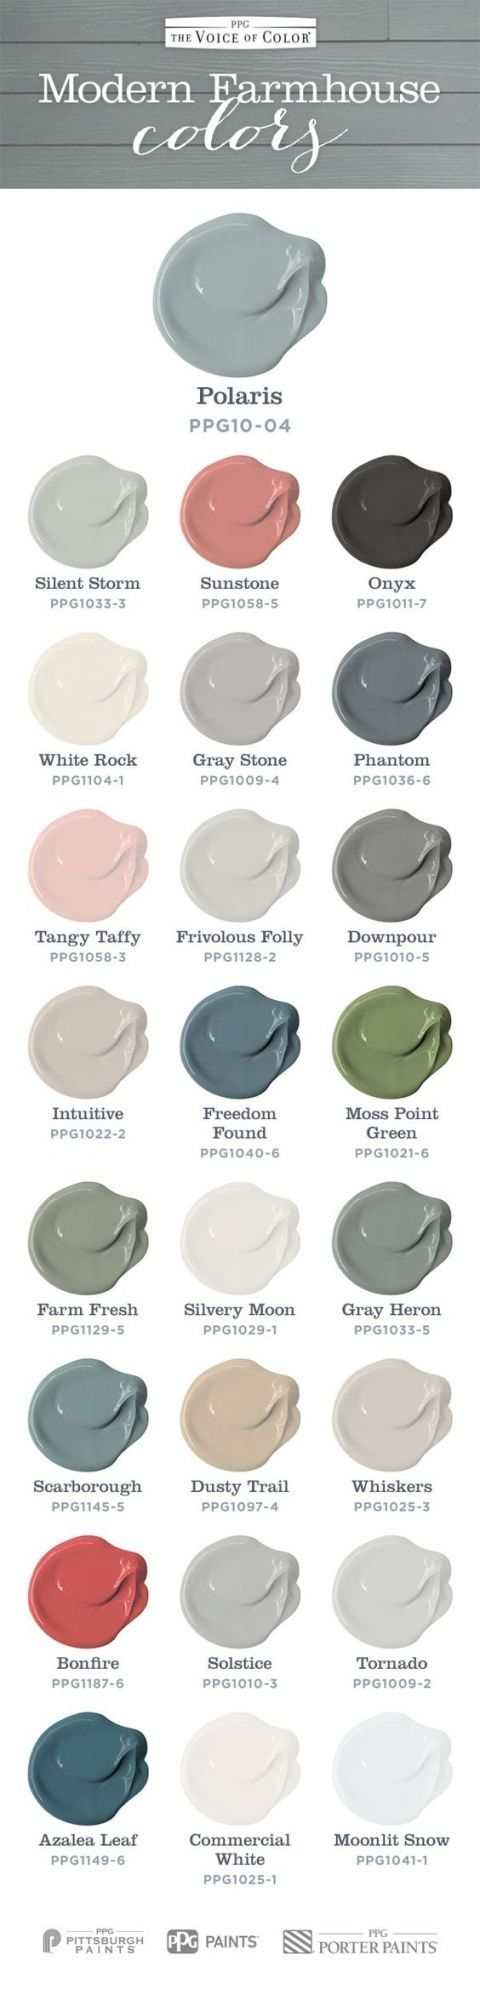 Modern Farmhouse Colors From Voice Of Color House Colors